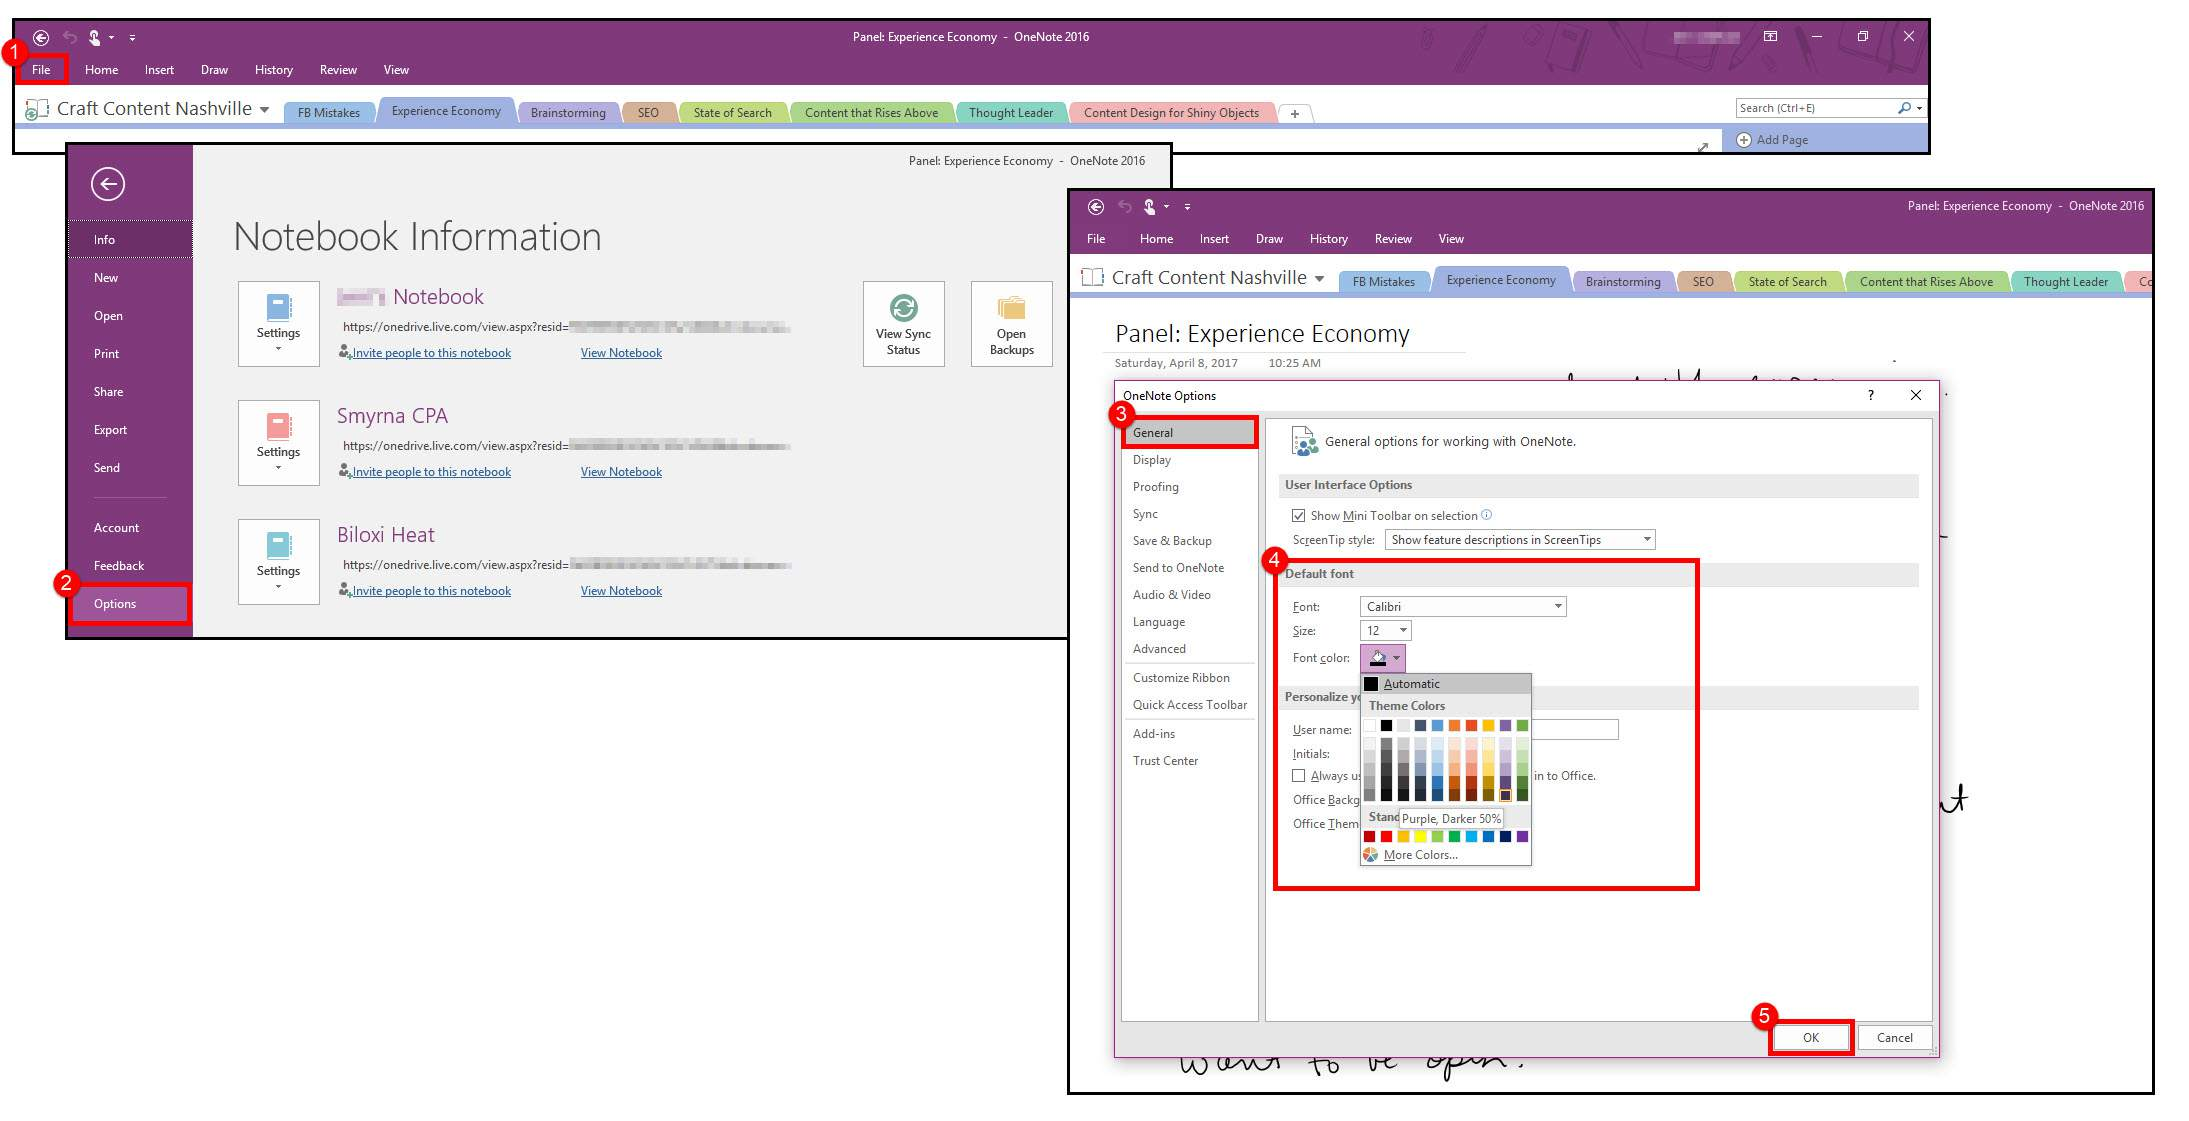 16 Settings To Control Your Microsoft Onenote Experience